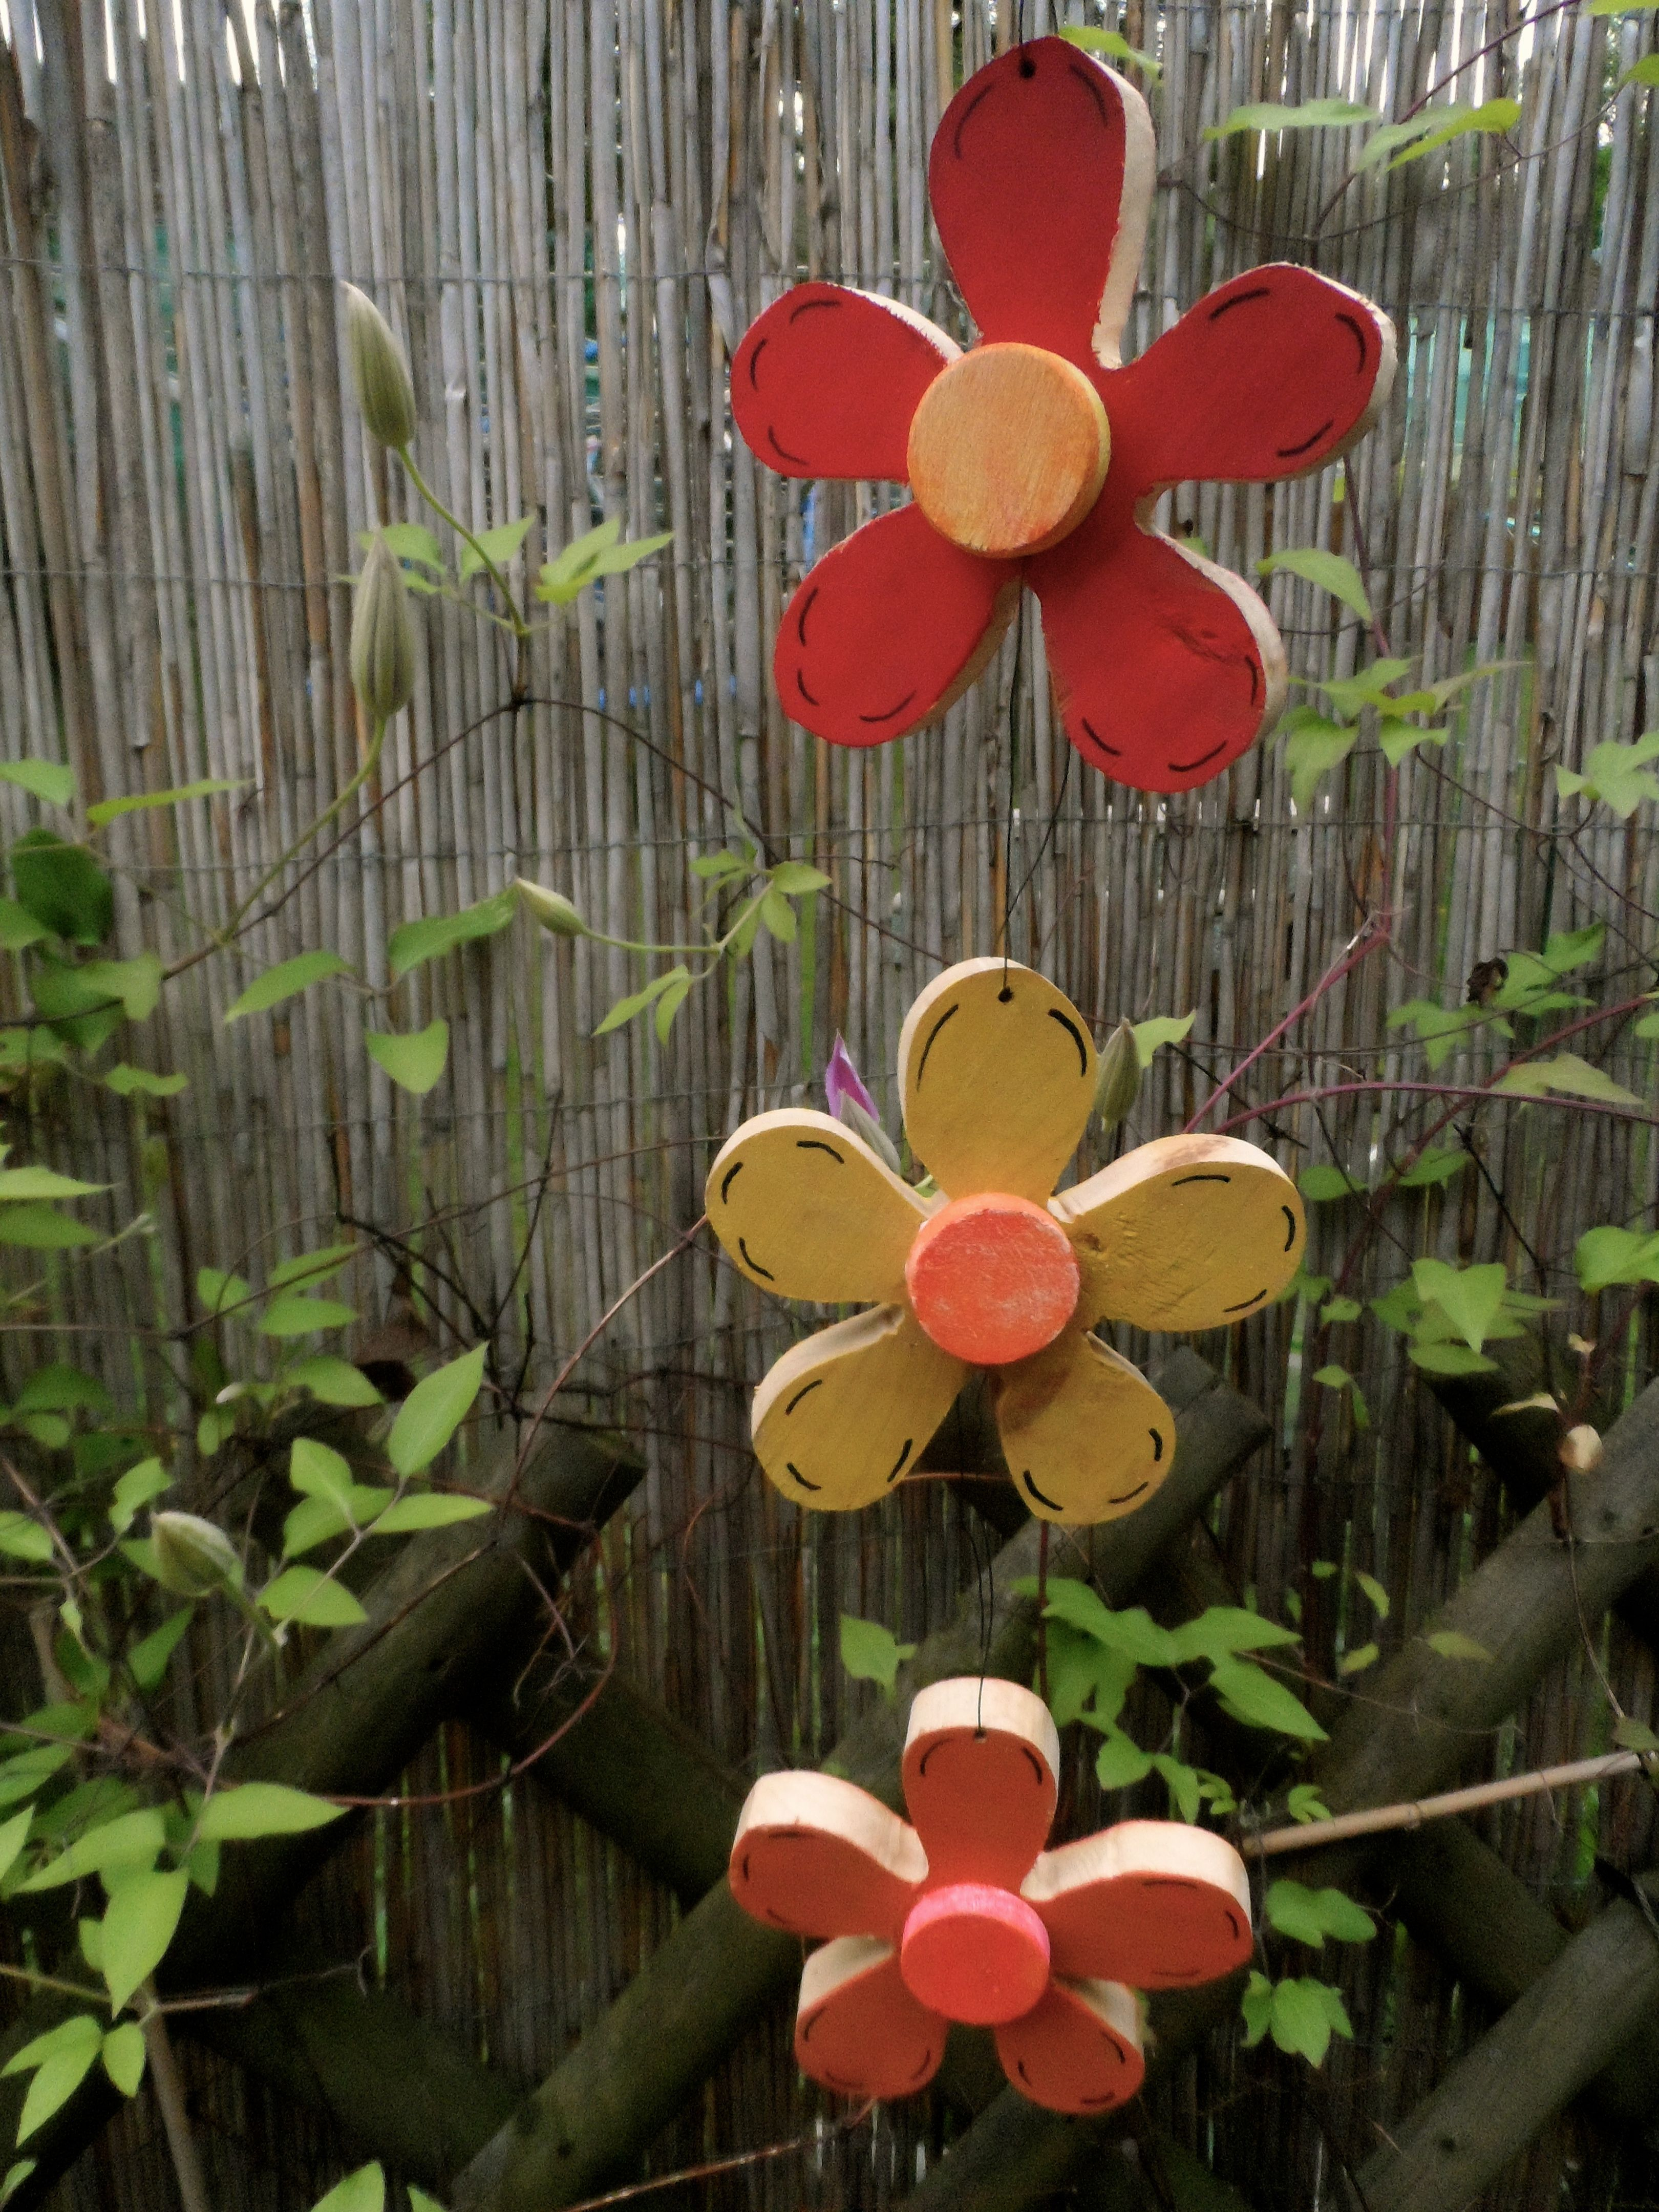 Painted Flowers For Kids Wooden Flowers On The Walls The Kids